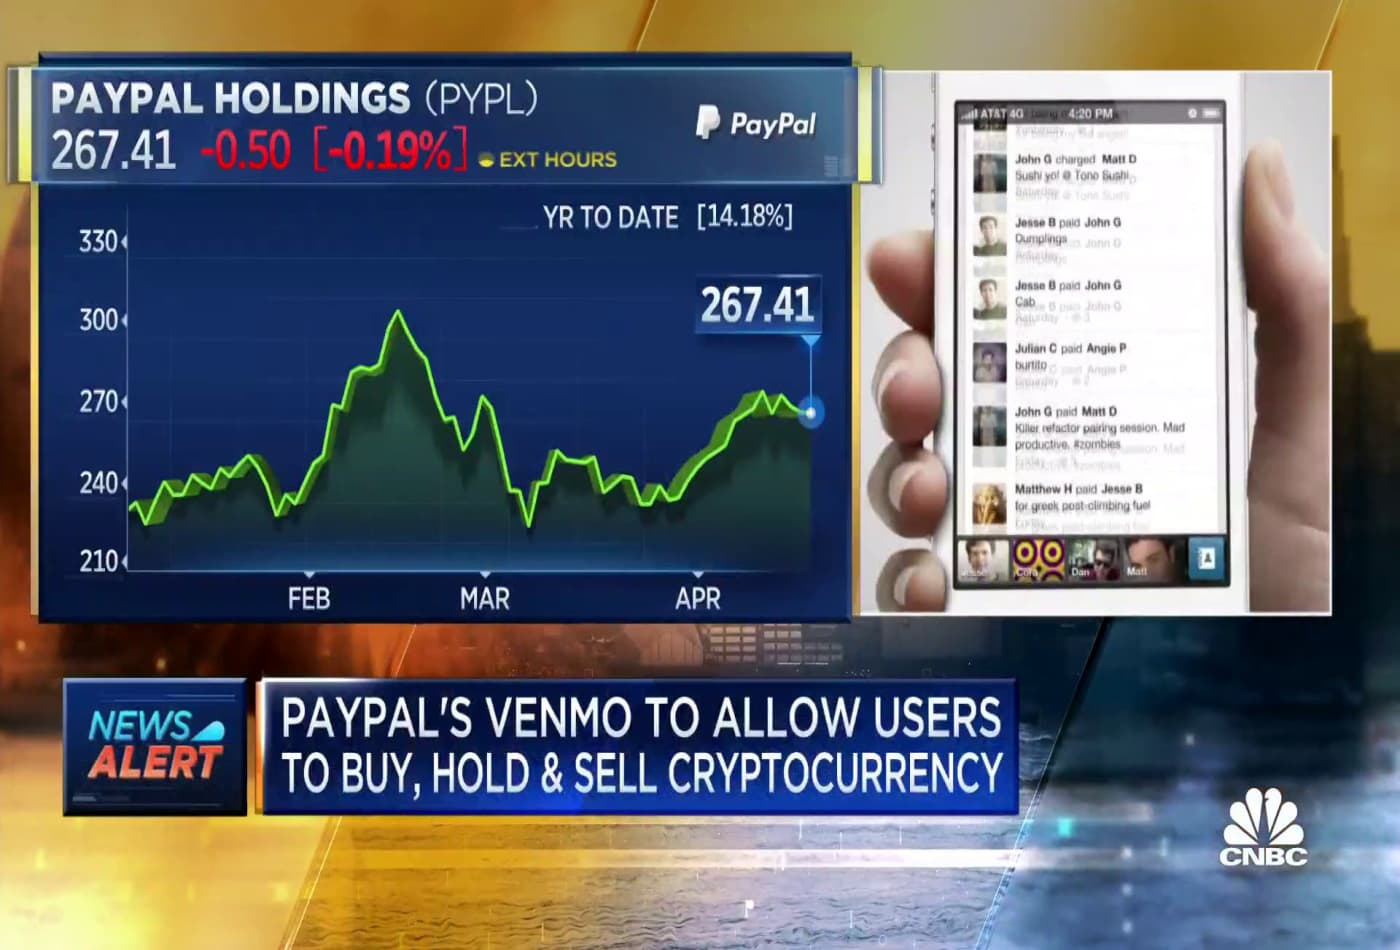 PayPal's Venmo to allow users to buy, hold, sell cryptocurrency